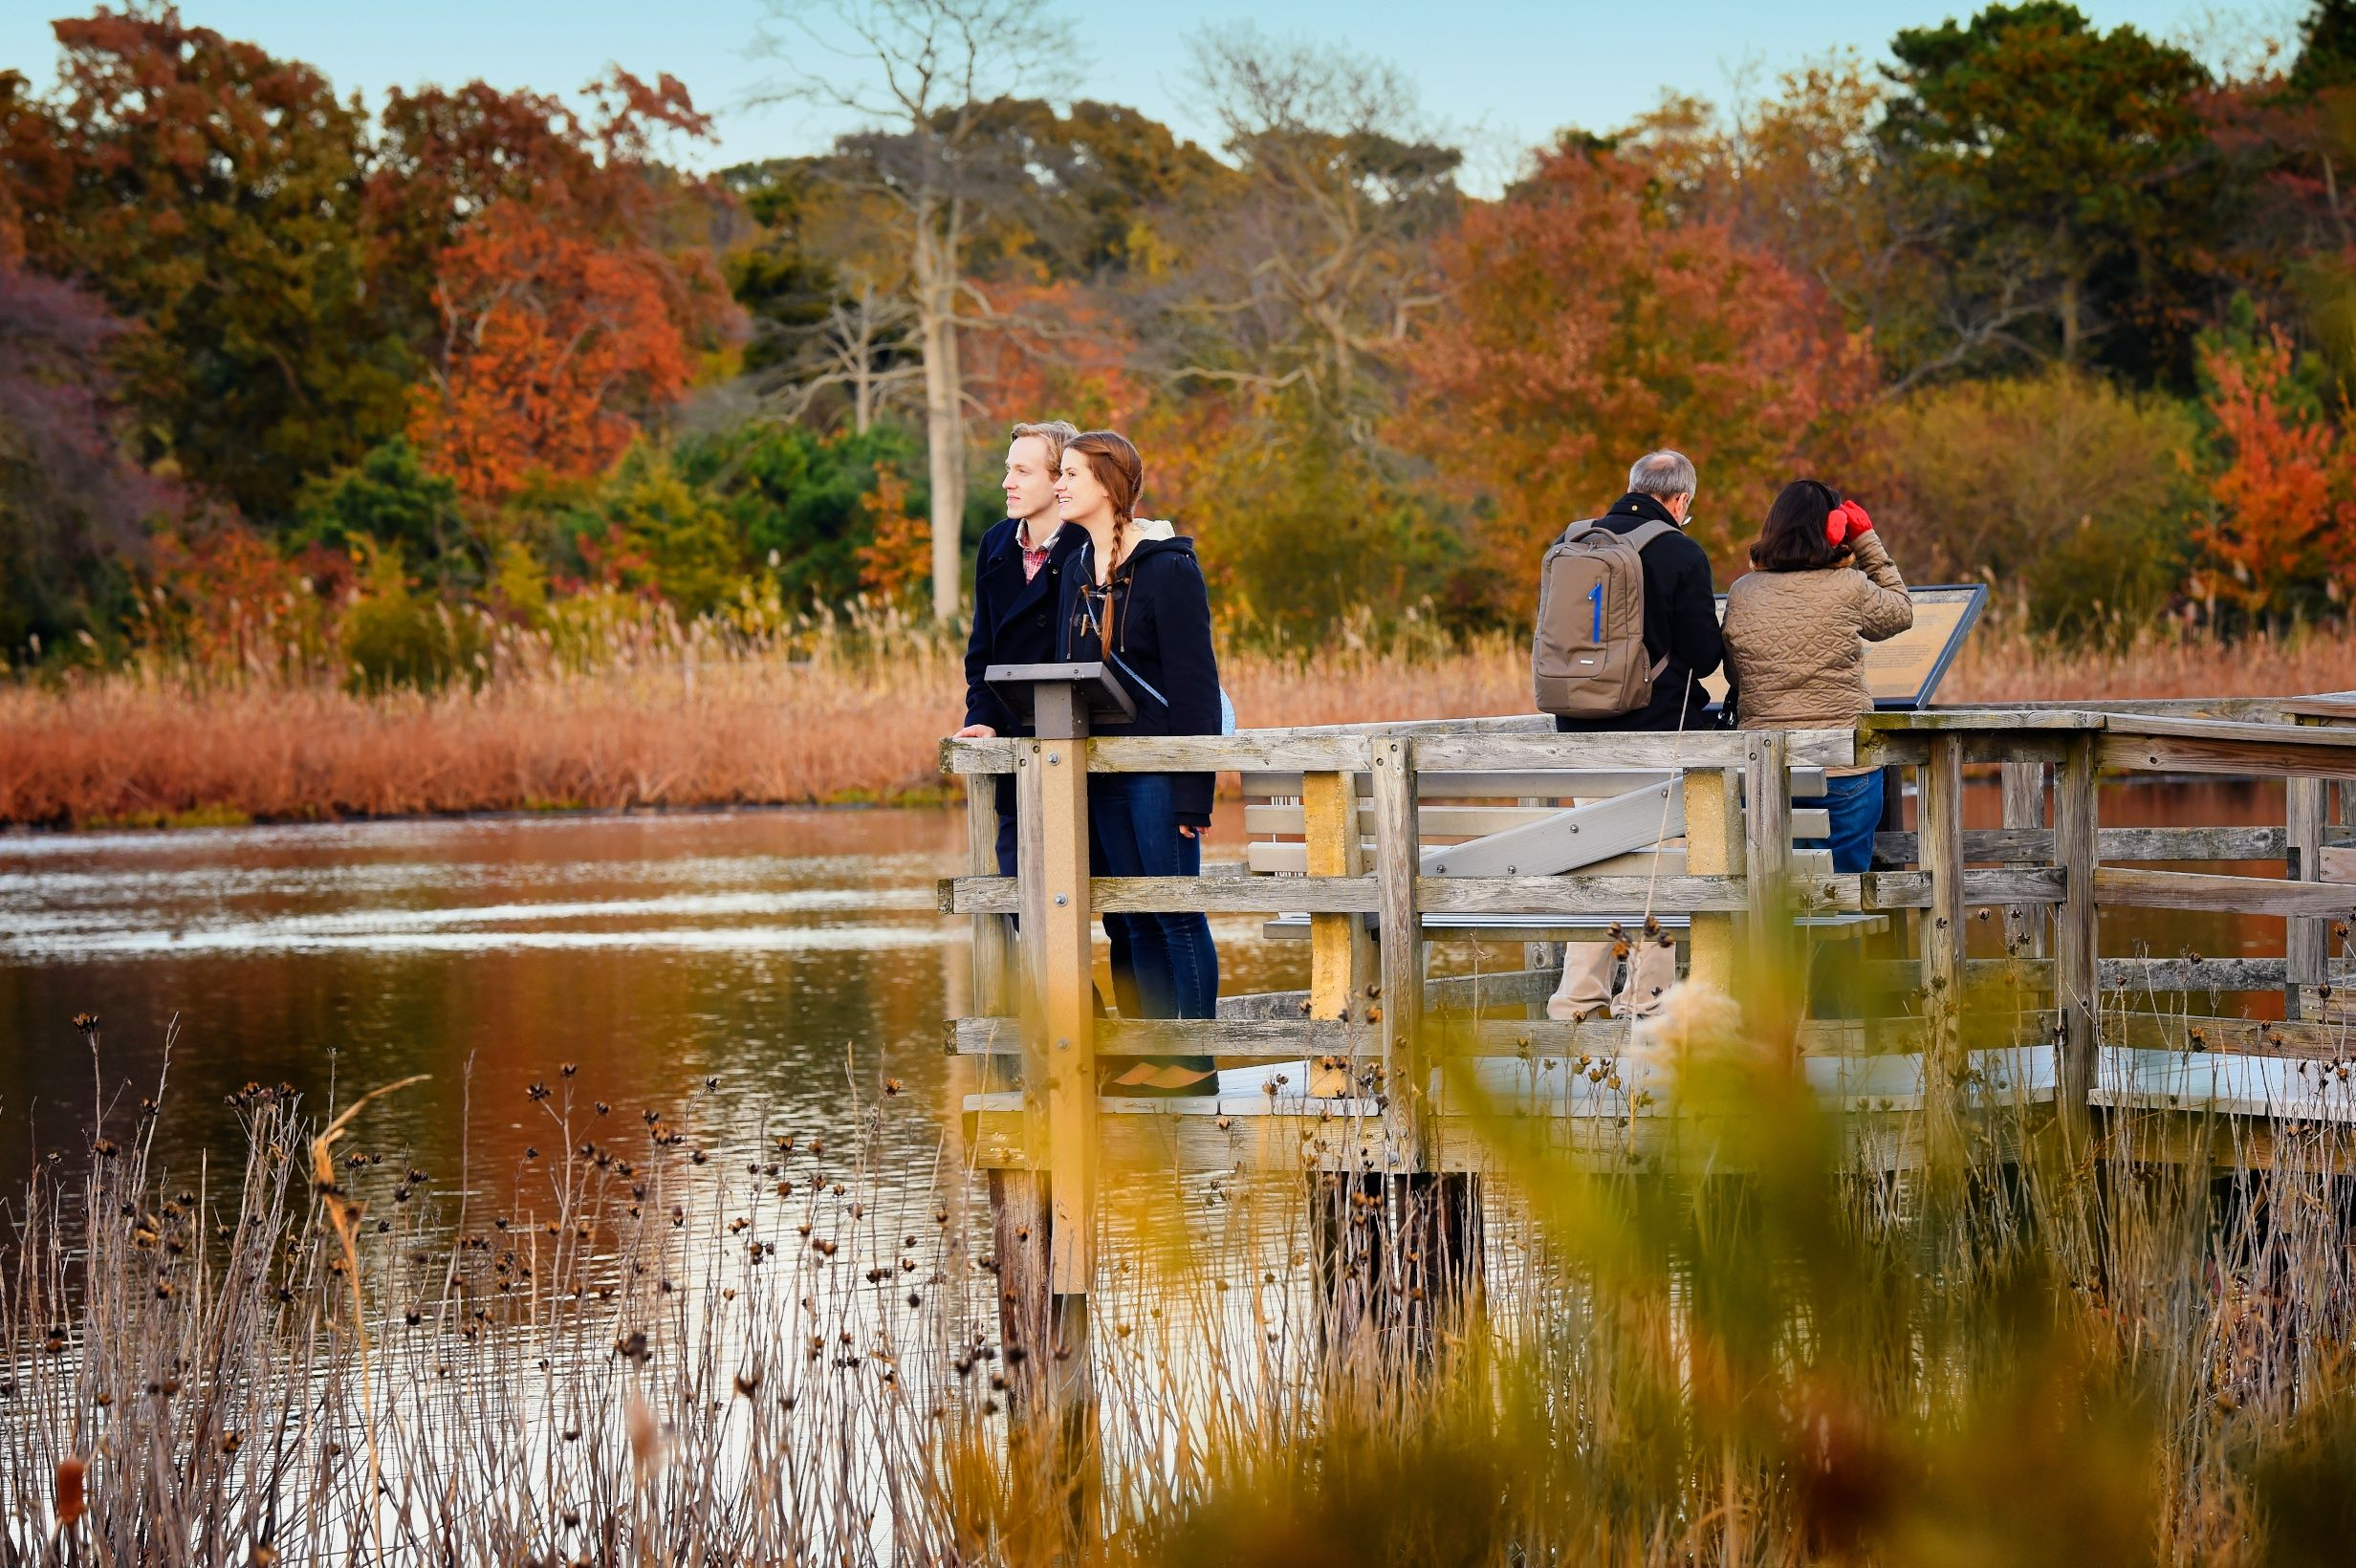 Become one with nature in the fall. Autumn, foliage, Cape May Point, Ocean City, Jersey Cape, Cape May County, New Jersey